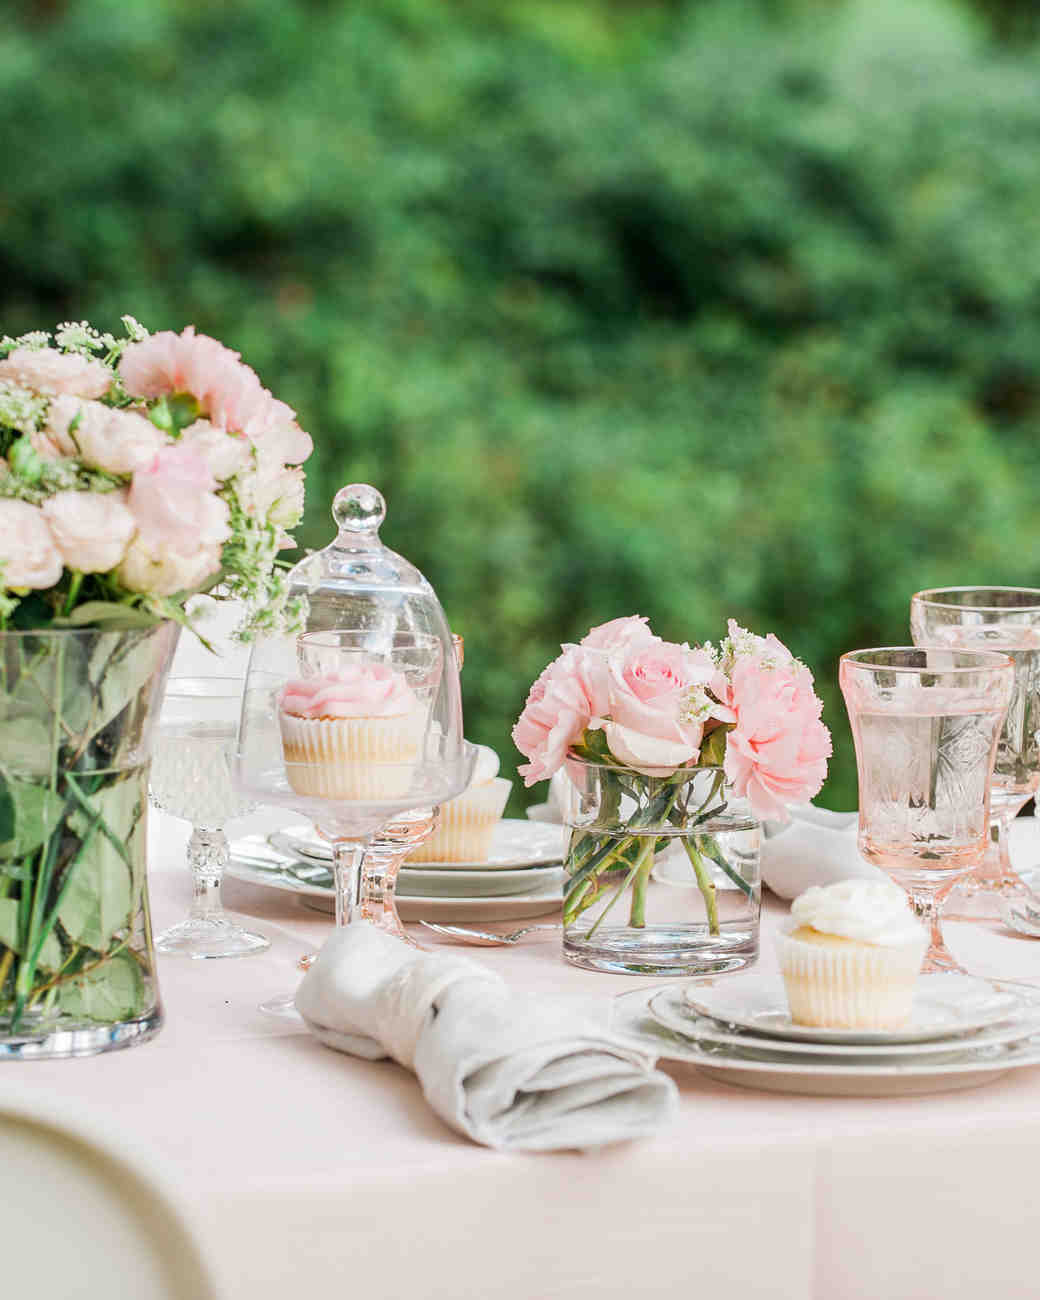 coming up roses pale pink is always a fit at bridal showers